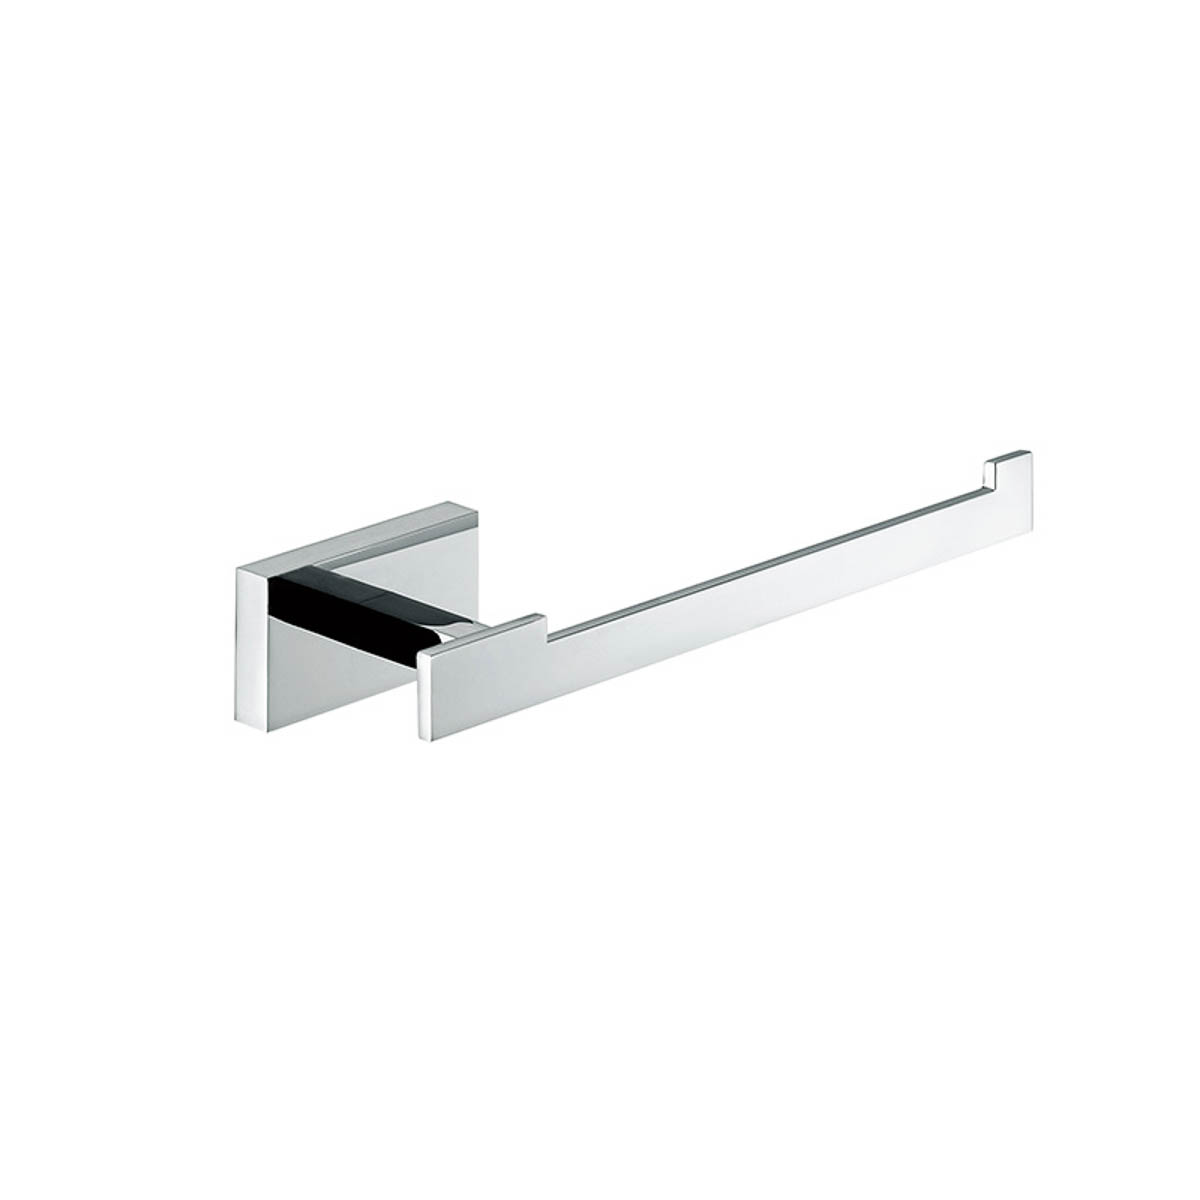 toilet roll holder, Bathware accessories, Portia